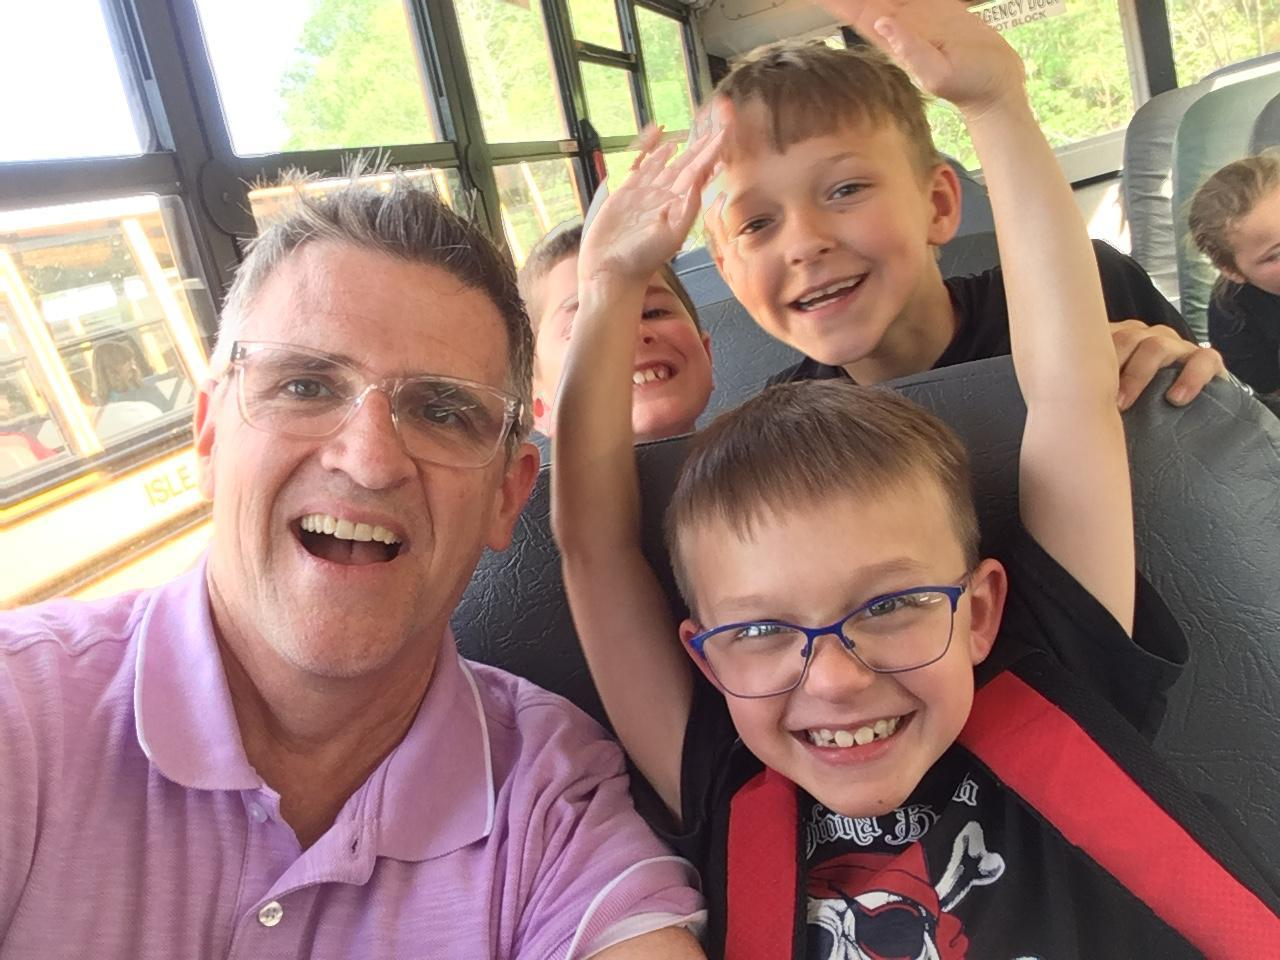 On the bus with Cole and Hank